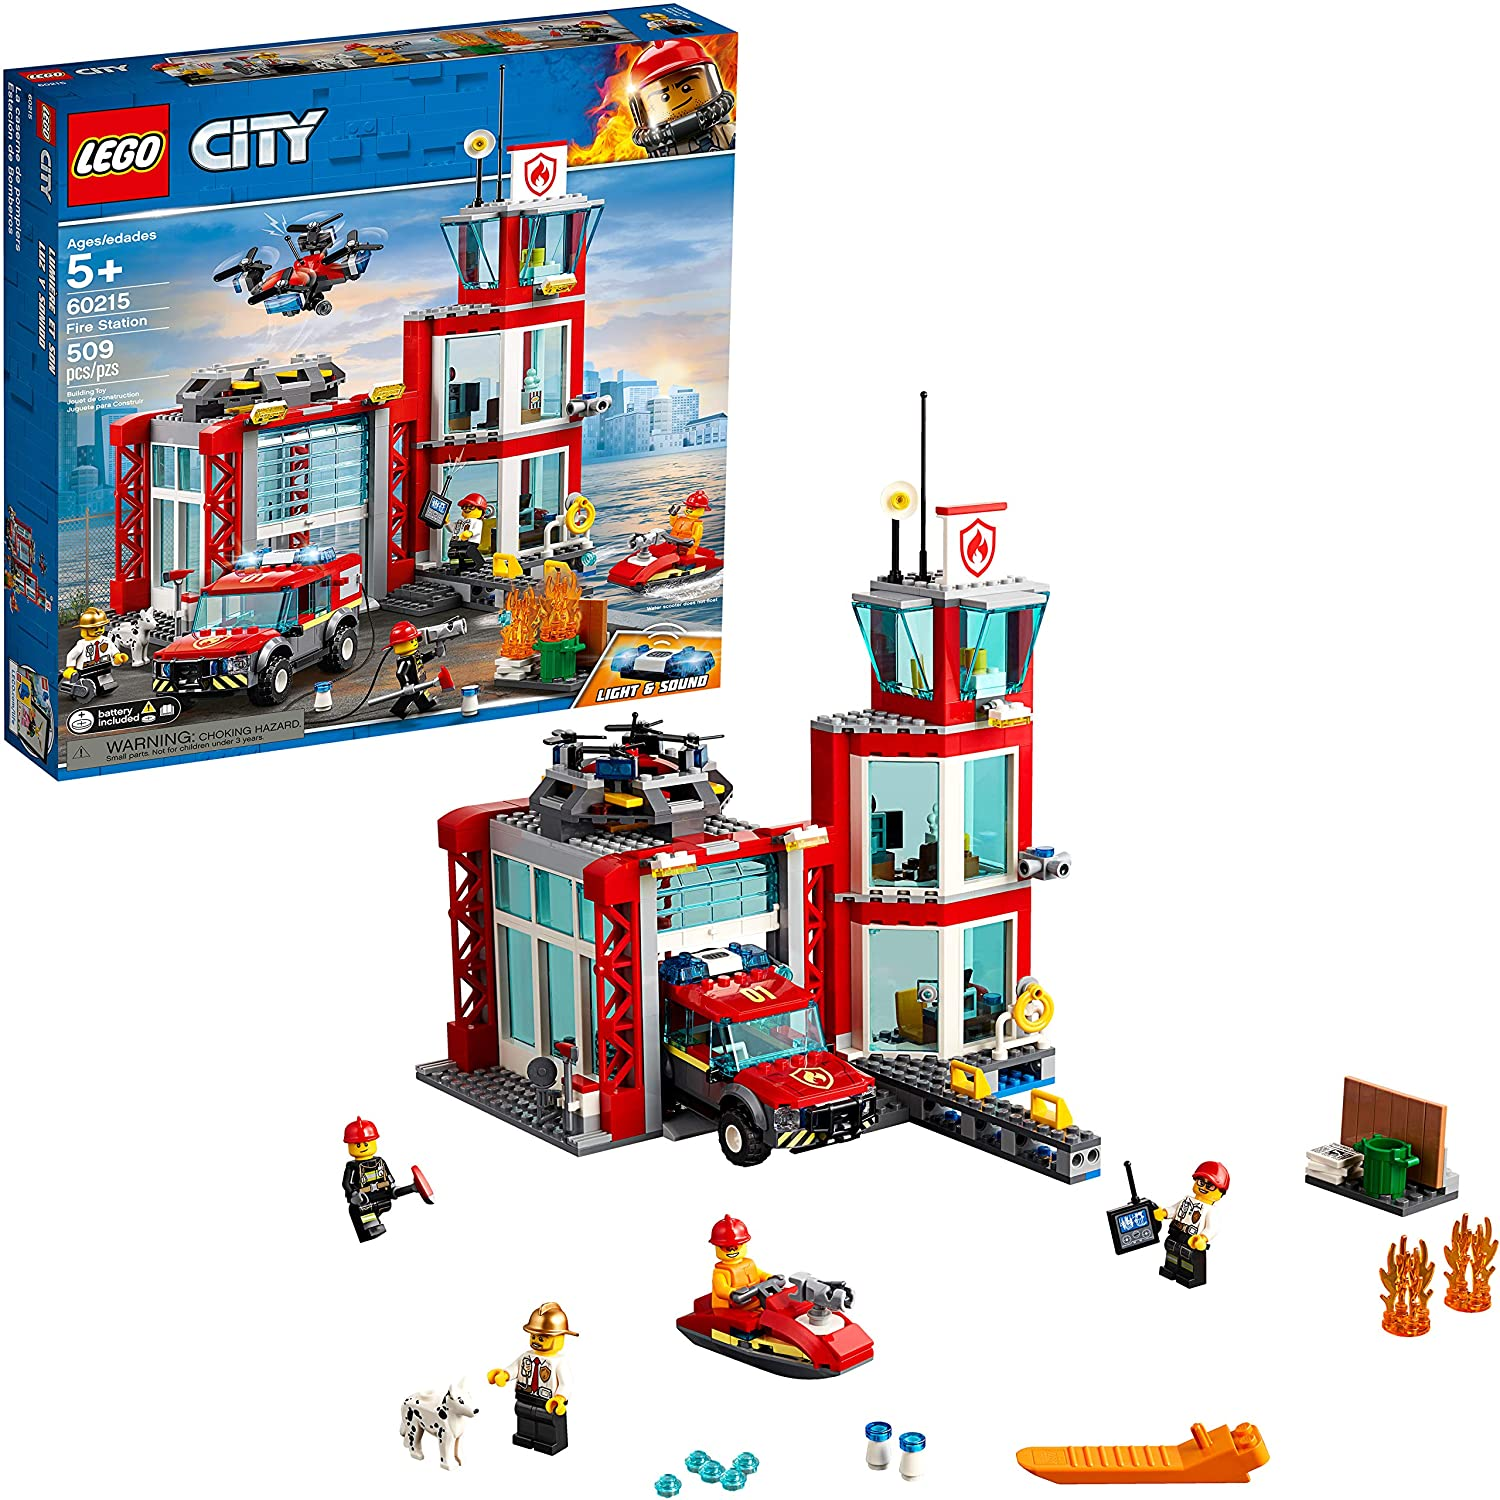 LEGO Fire Station With Vehicle City Sets, 509-Piece